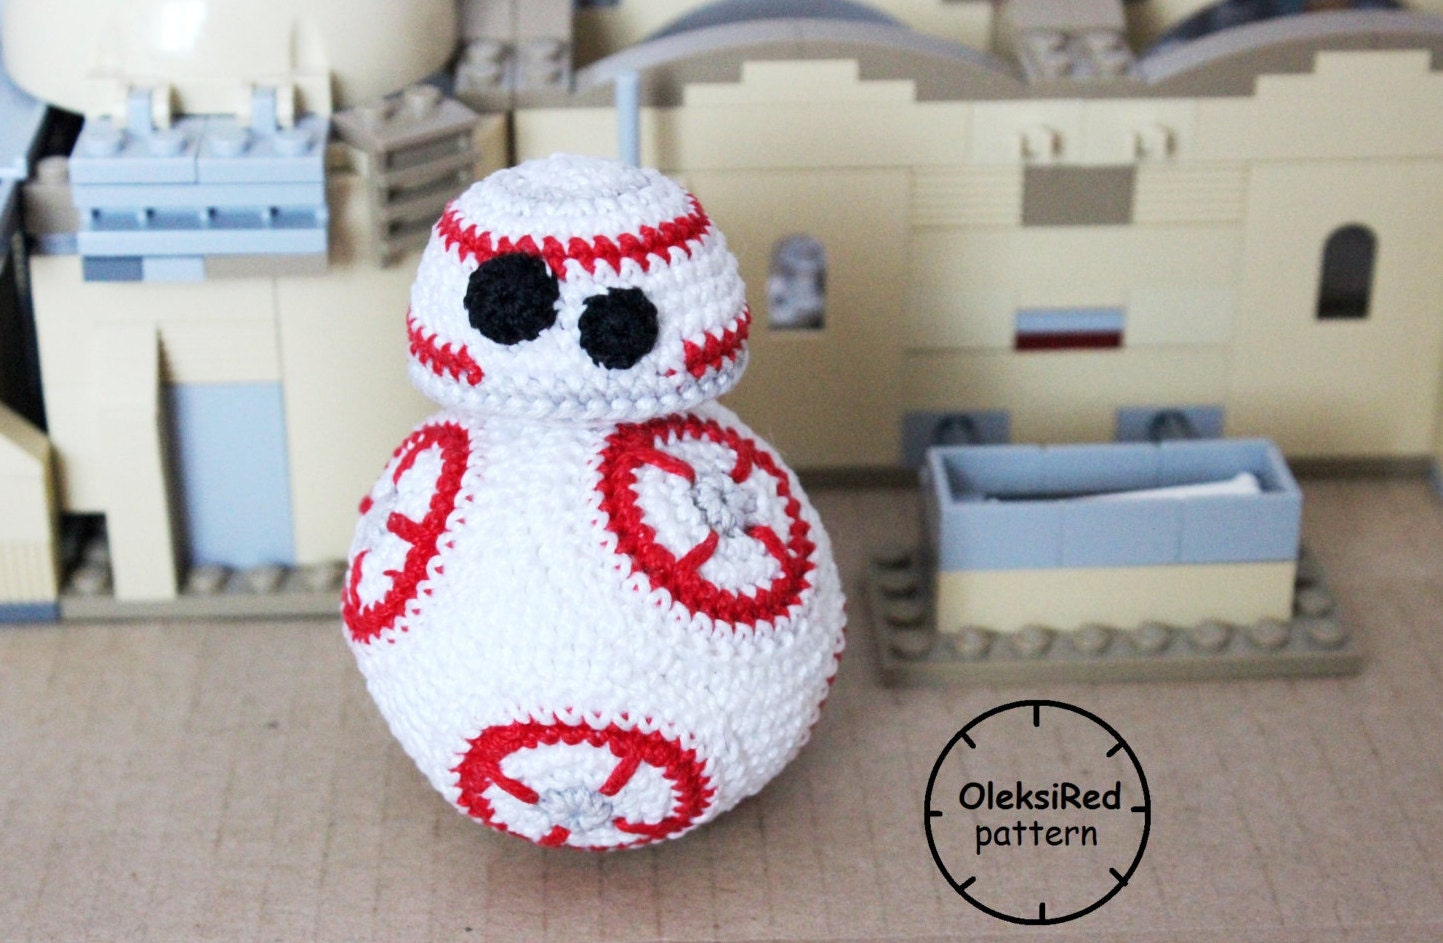 Amigurumi Star Wars Patterns Free : Star wars crochet pattern droid bb amigurumi pattern from